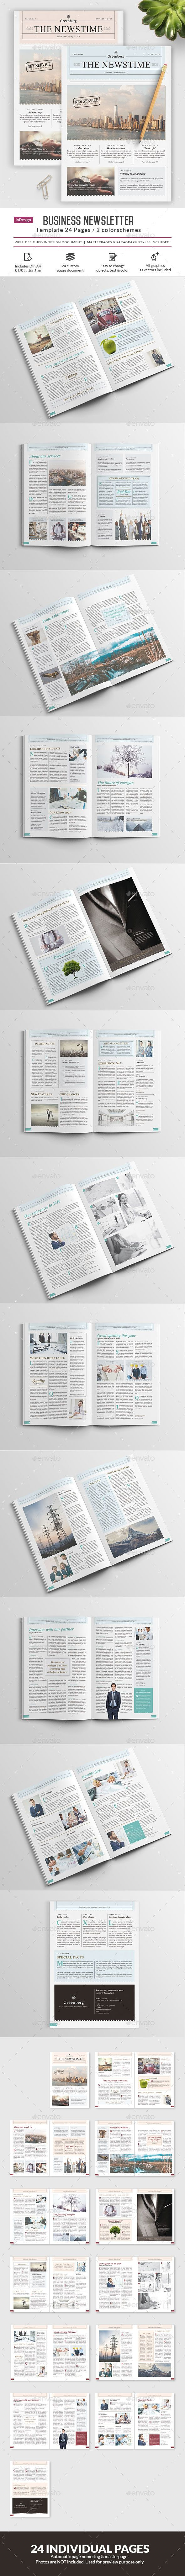 Business Newsletter - 24 pages - Newsletters Print Templates